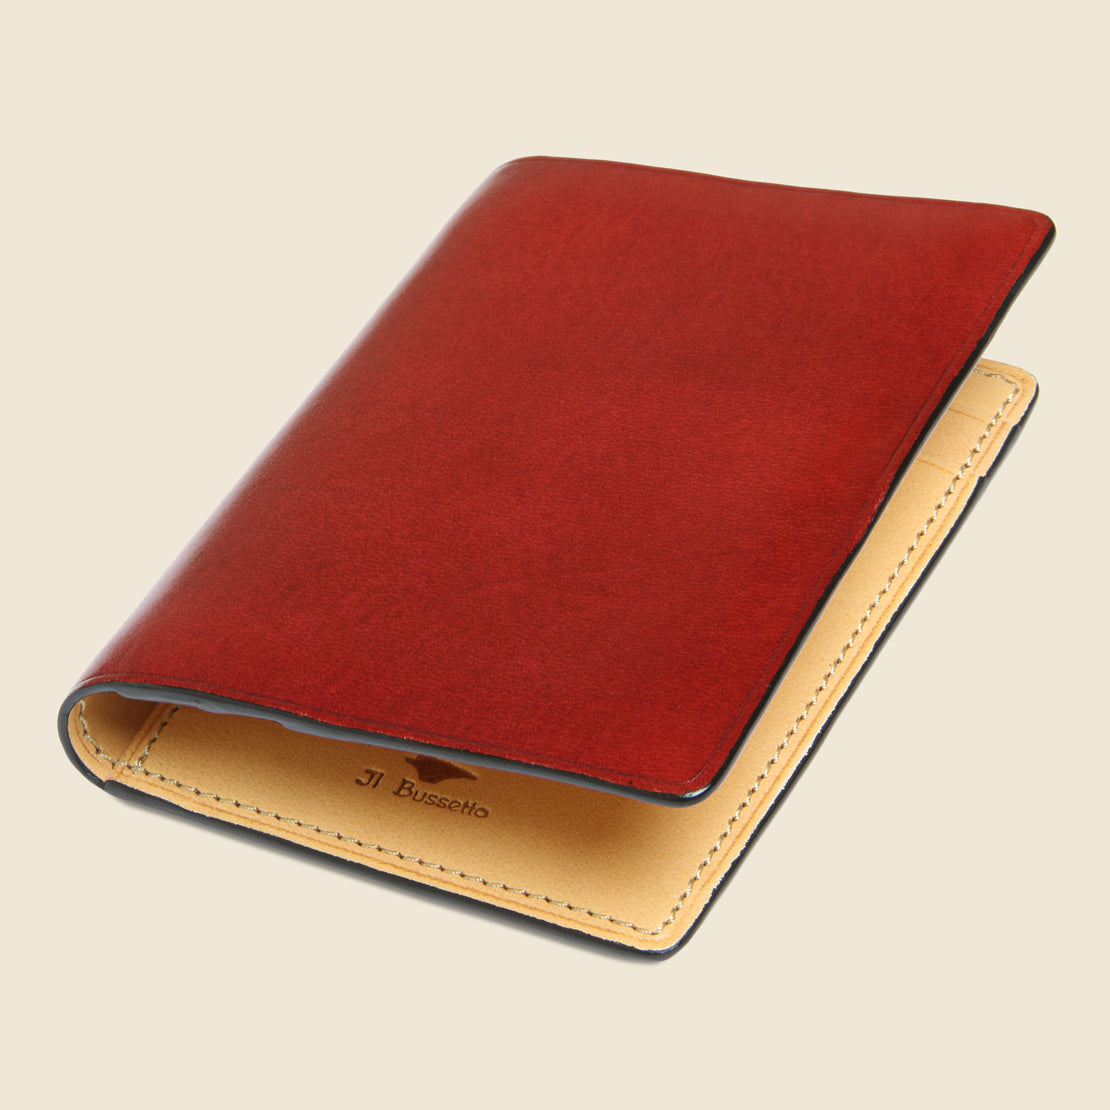 Bi-Fold Card Case - Red - Il Bussetto - STAG Provisions - Accessories - Wallets